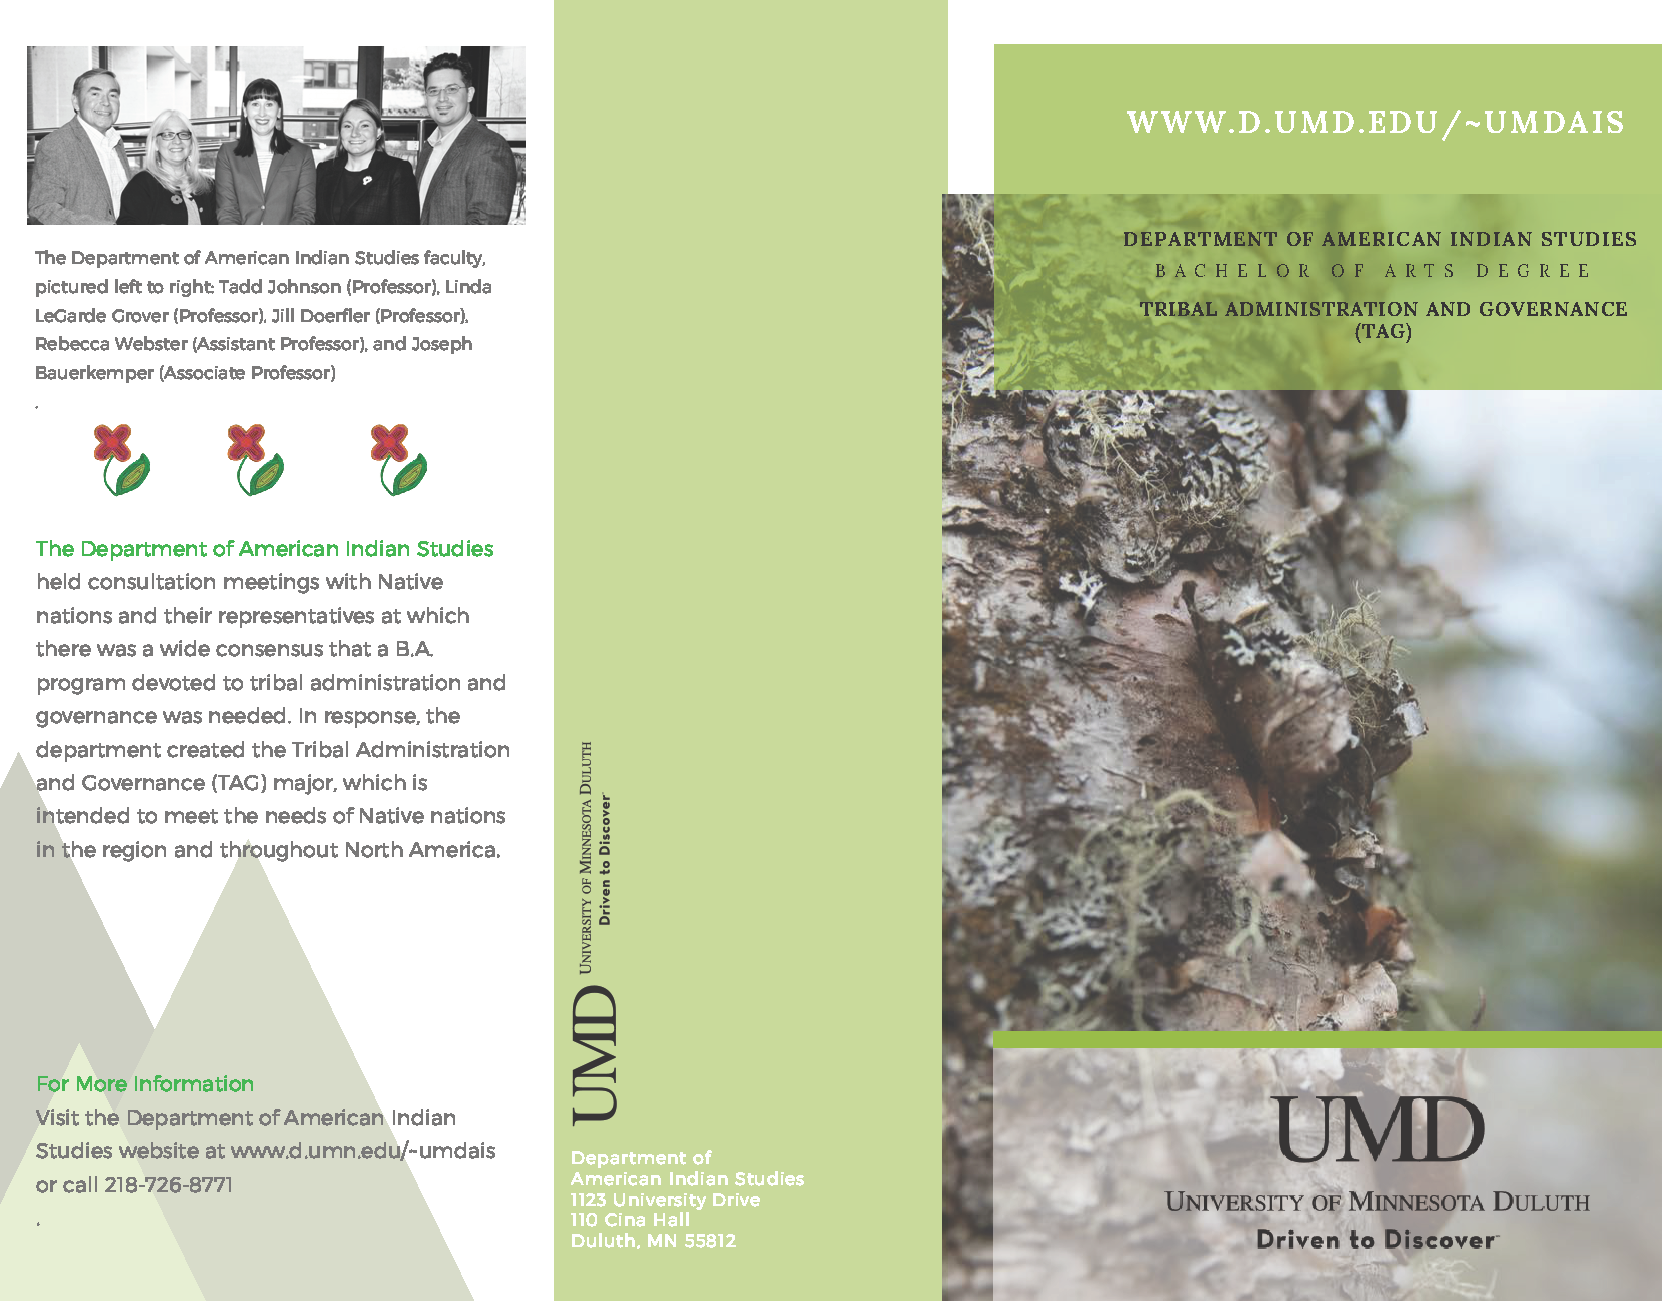 brochure page with photo of bark and text about the tribal administration & governance page